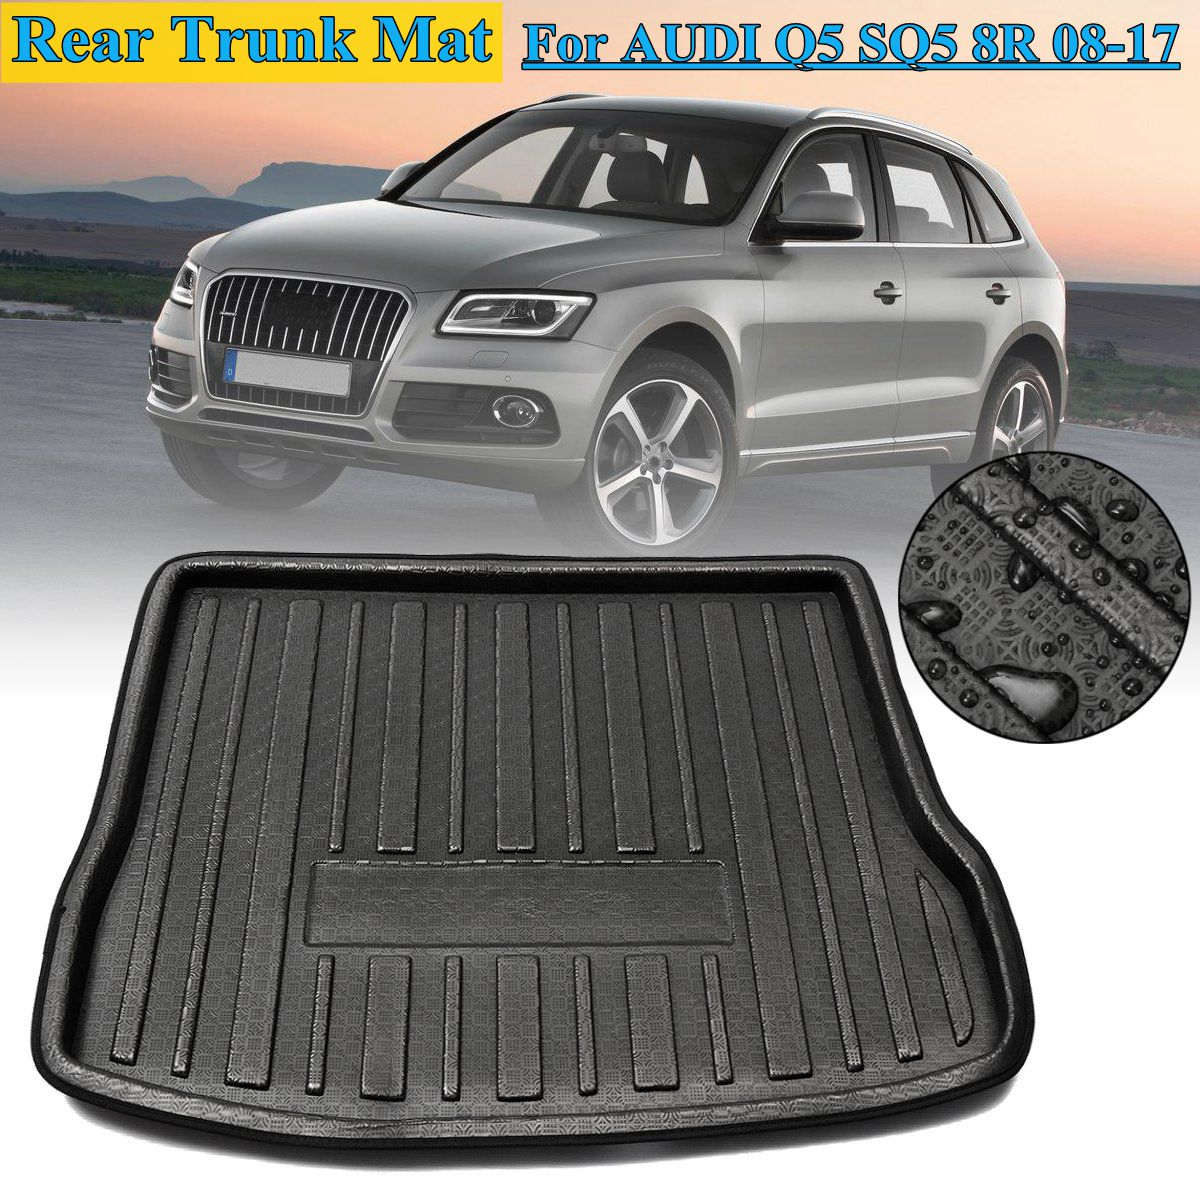 authentic super popular good texture T4W 1x Tapis de Coffre Arrière Pour AUDI Q5 SQ5 8R 2008-2017